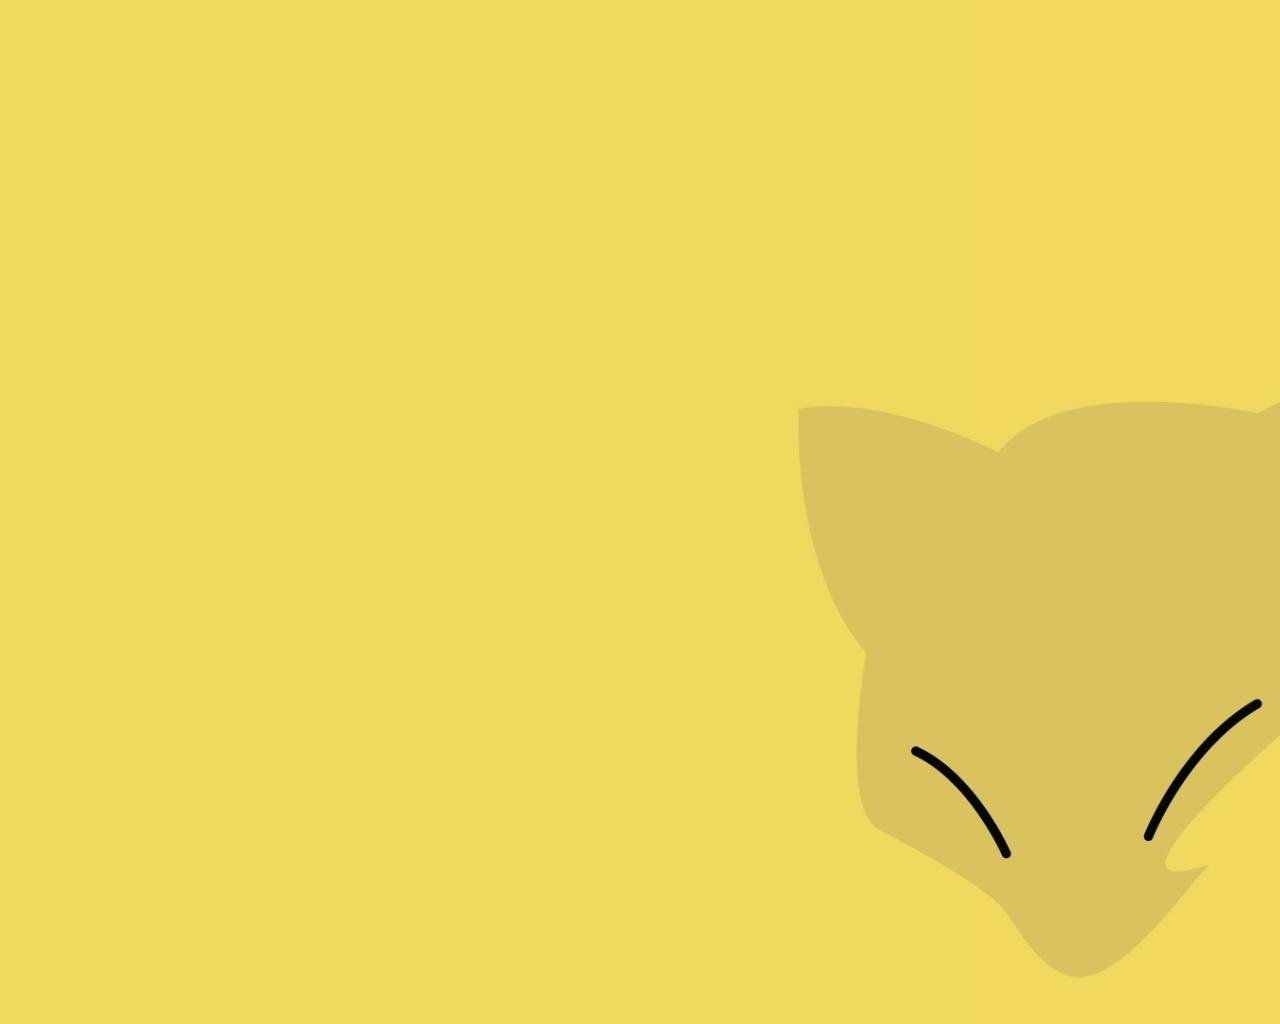 abra pokemon simple background best widescreen awesome bXUl 1280x1024